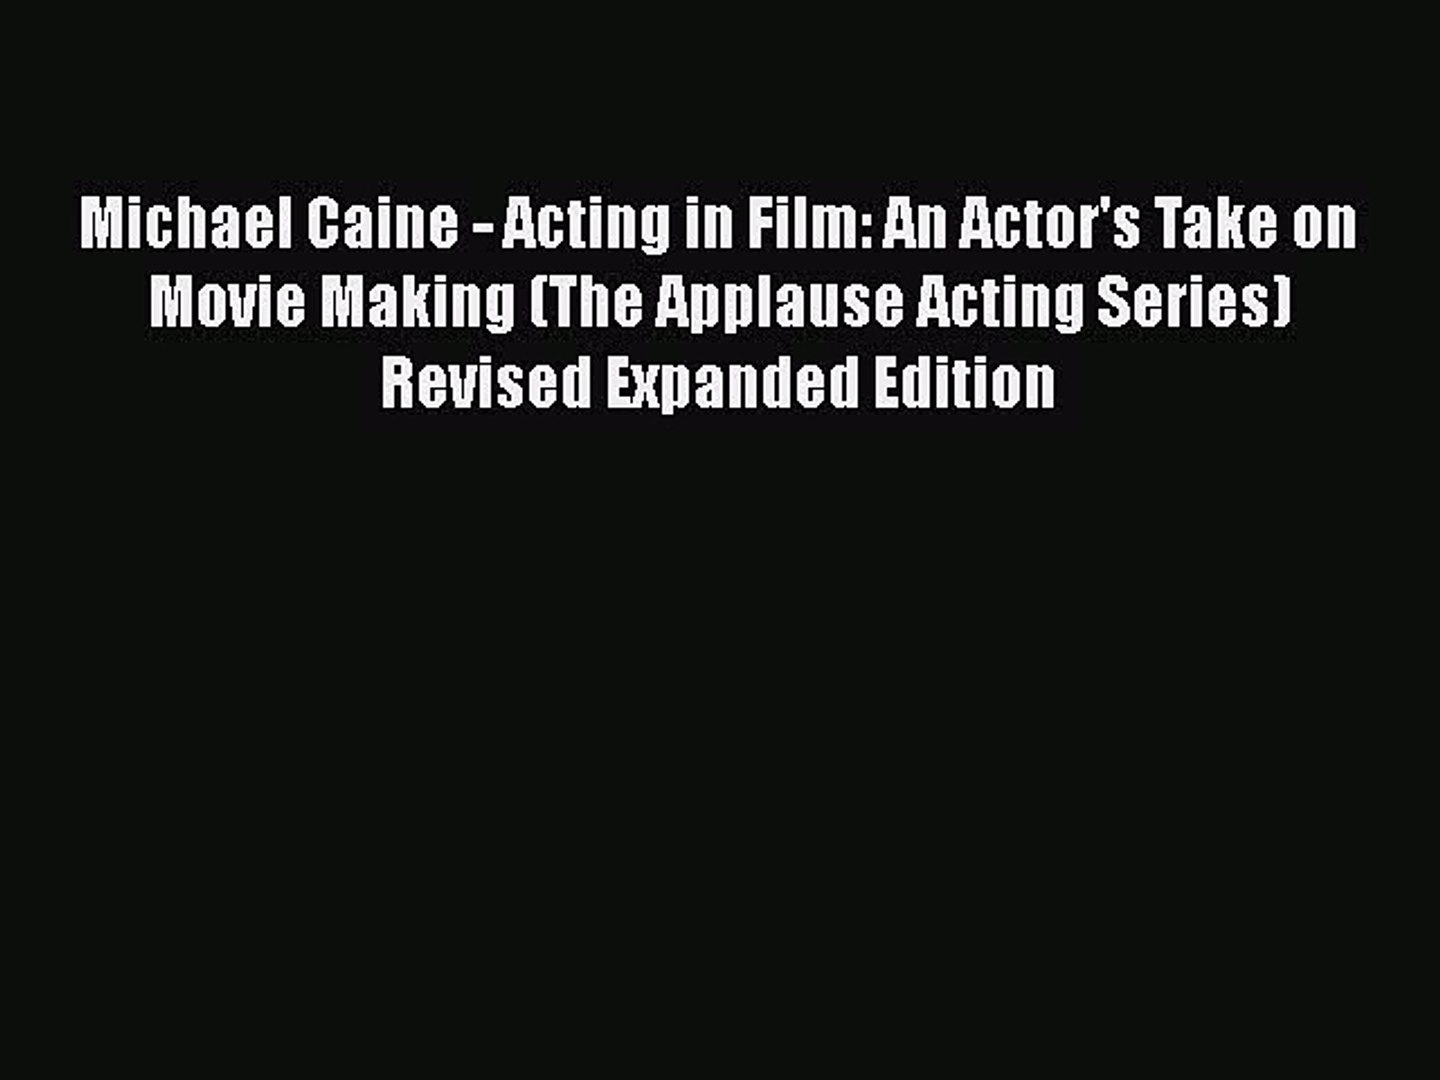 [PDF Download] Michael Caine - Acting in Film: An Actor's Take on Movie Making (The Applause